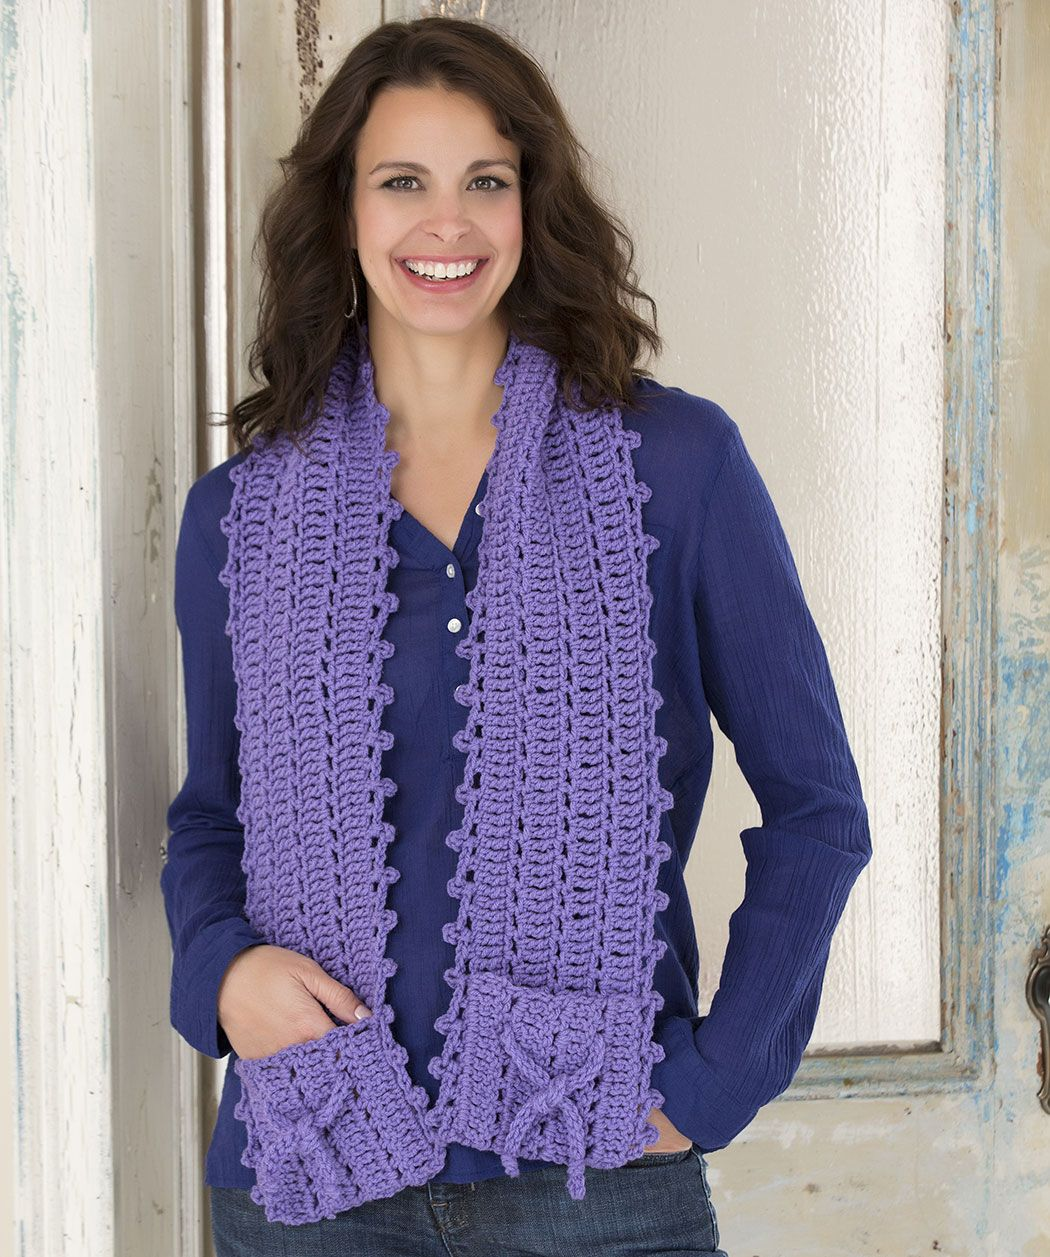 Crochet pocket scarf free easy level pattern crochet love crochet pocket scarf free easy level pattern bankloansurffo Image collections